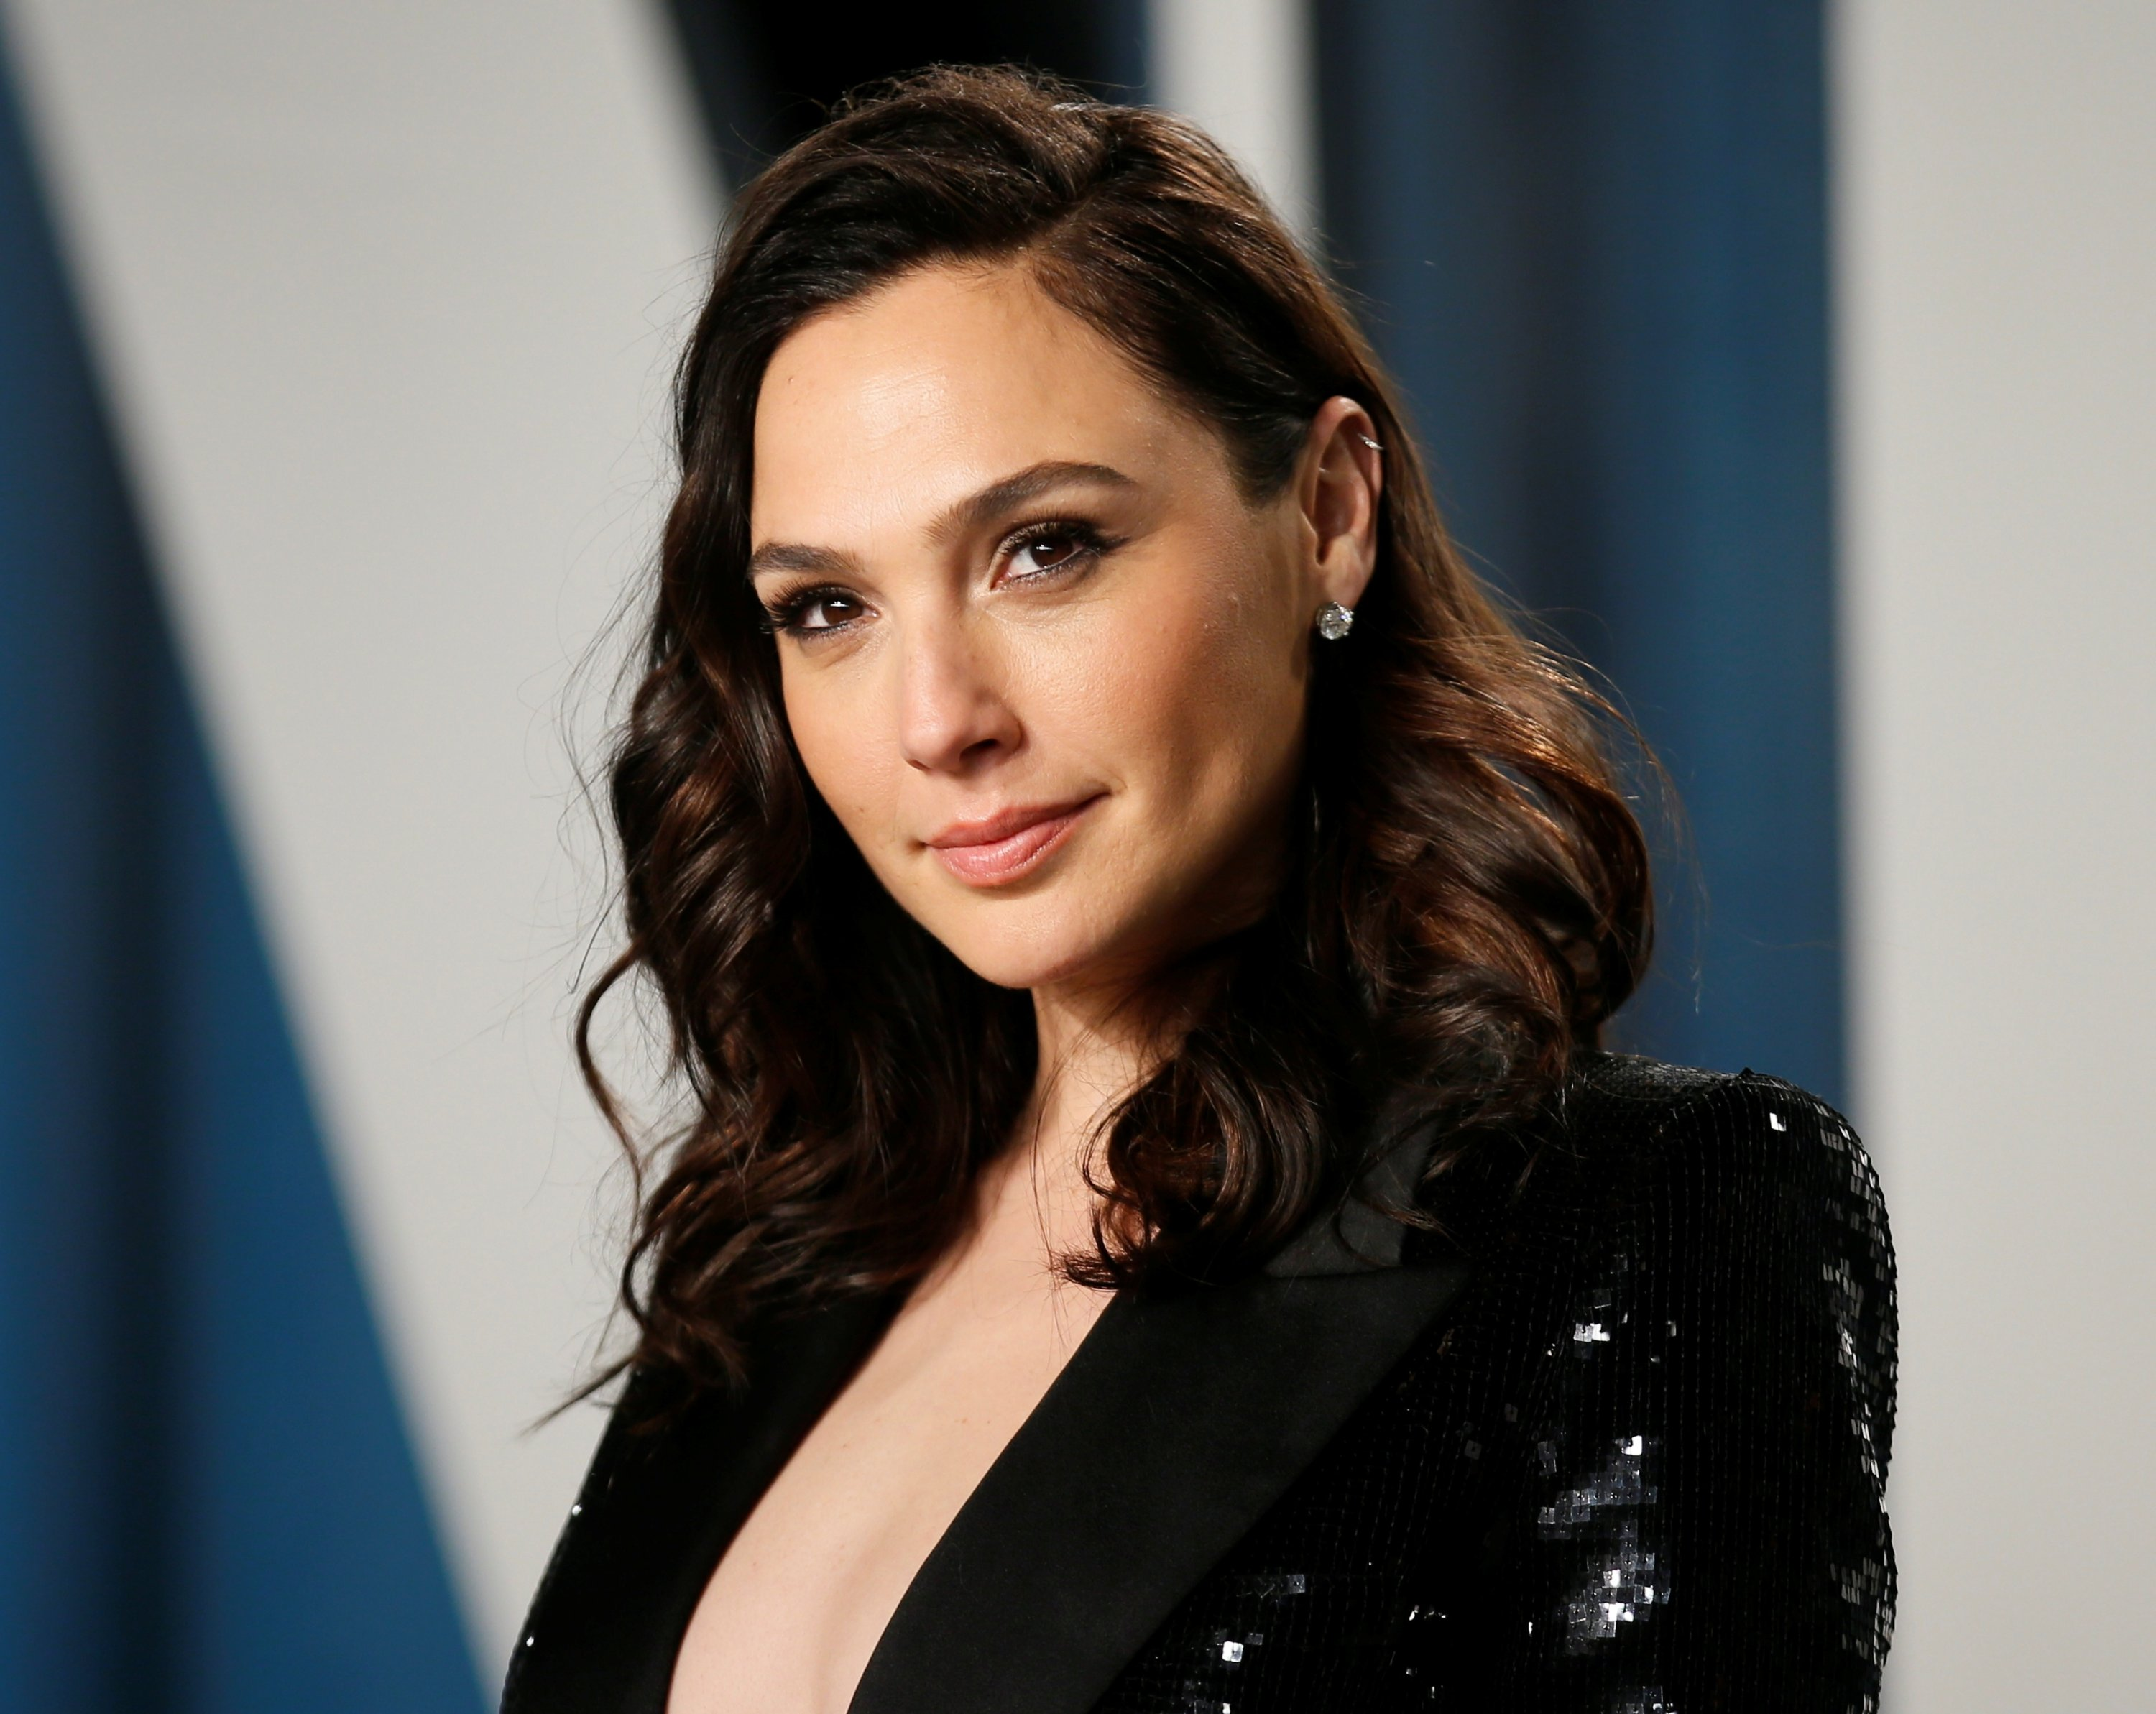 Gal Gadot attends the Vanity Fair Oscar party in Beverly Hills during the 92nd Academy Awards, in Los Angeles, California, U.S., Feb. 9, 2020. (Reuters Photo)